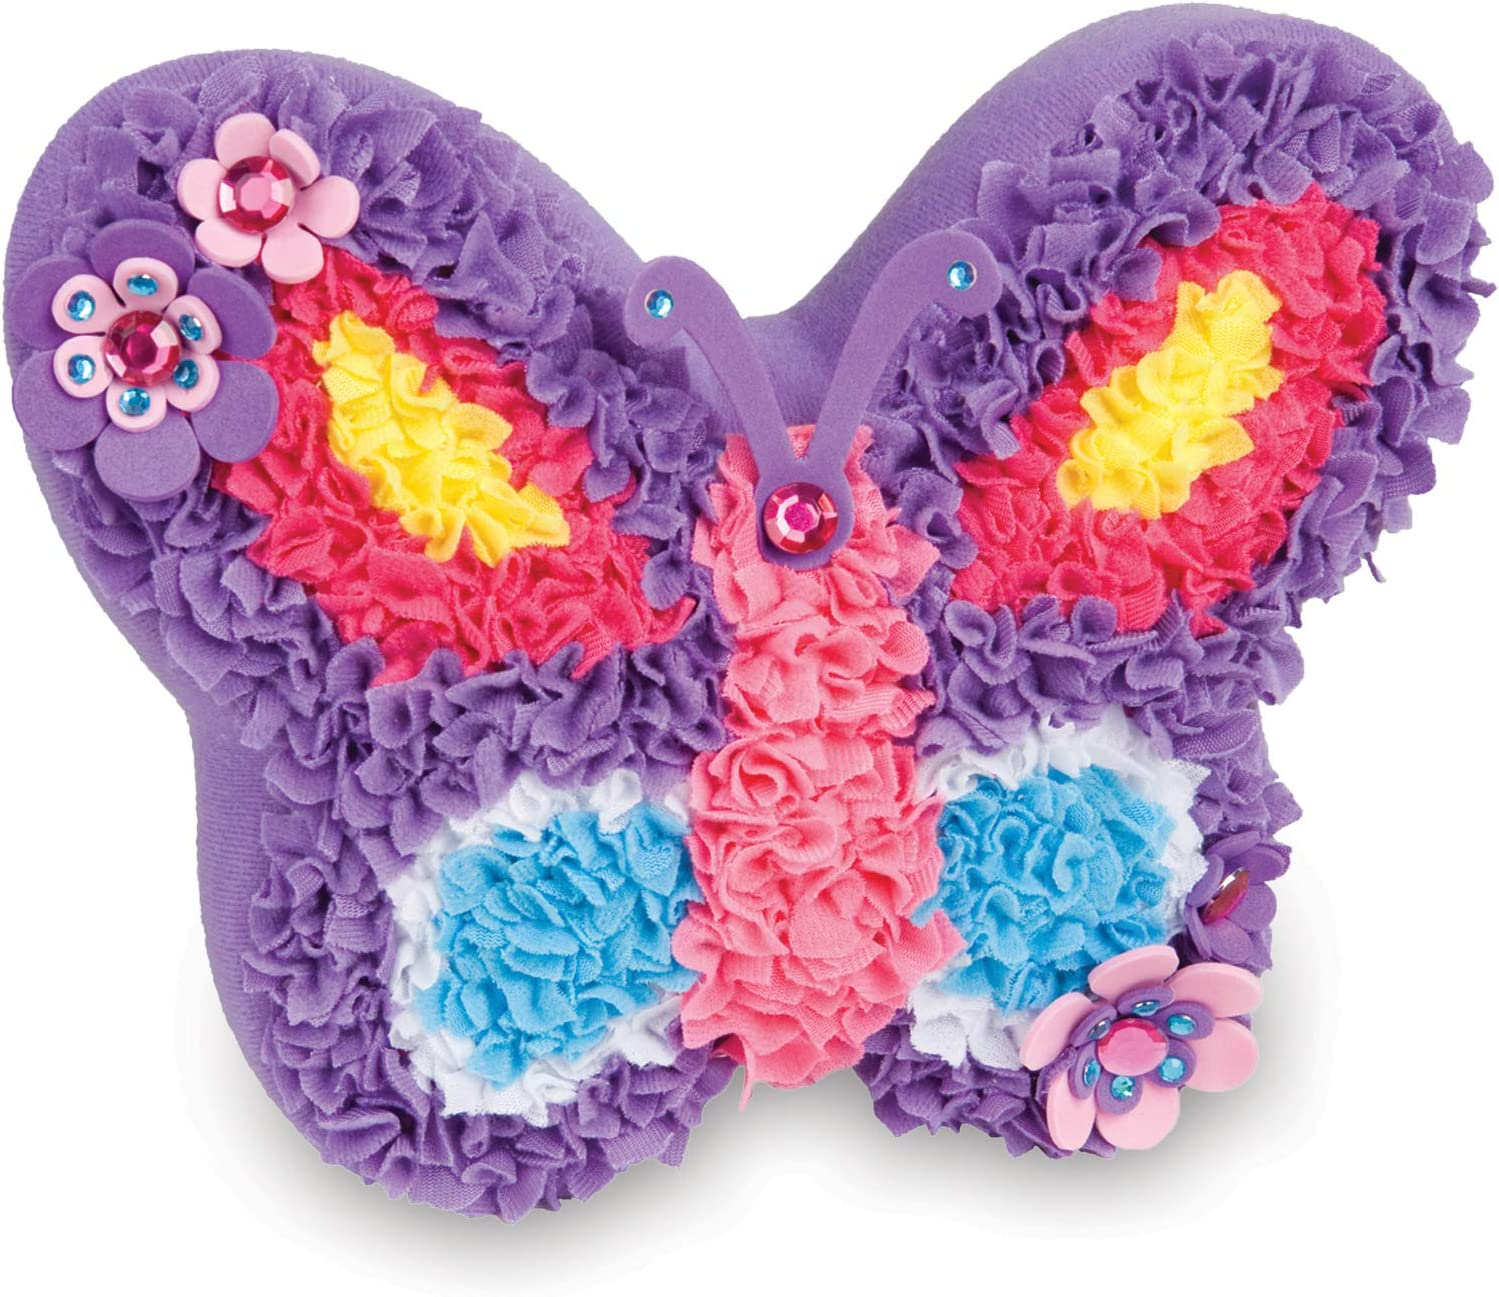 The Orb Factory Plush Craft Butterfly Pillow Butterfly